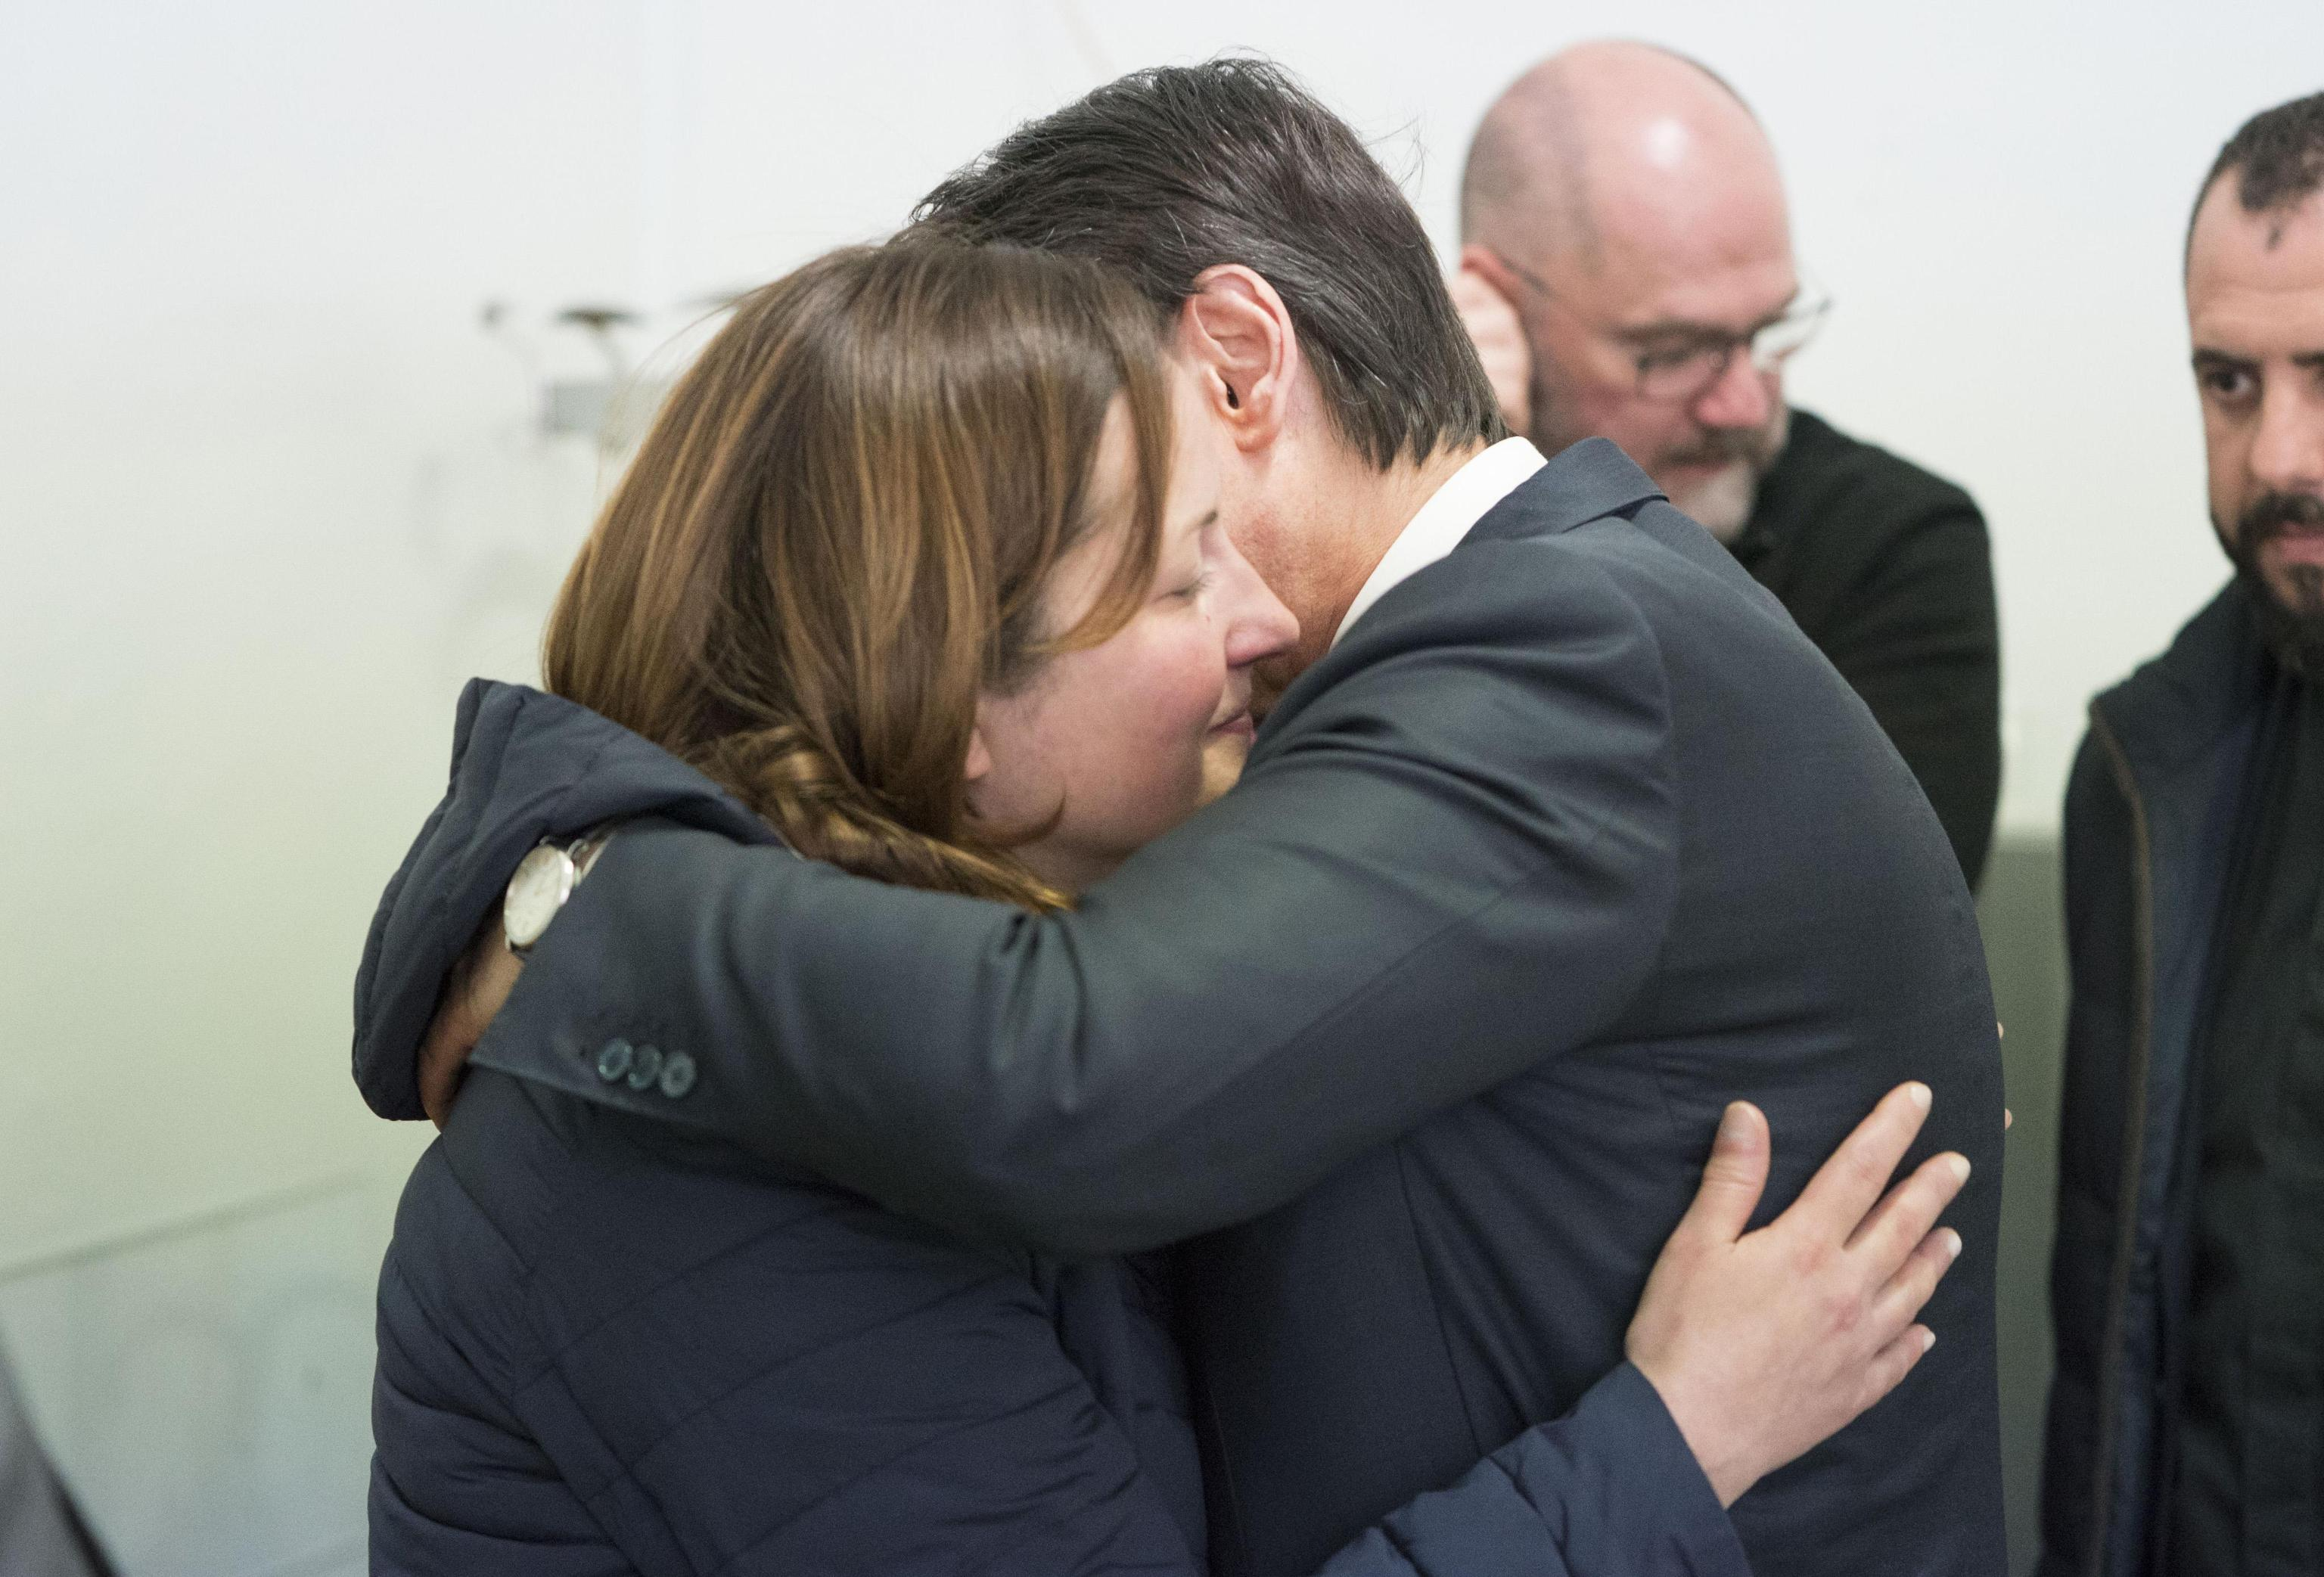 Il presidente del Consiglio, Giuseppe Conte, visita i familiari del maresciallo Vincenzo Di Gennaro, ucciso questa mattina a Cagnano Varano, 13 aprile 2019. ANSA/FILIPPO ATTILI/PALAZZO CHIGI +++ ANSA PROVIDES ACCESS TO THIS HANDOUT PHOTO TO BE USED SOLELY TO ILLUSTRATE NEWS REPORTING OR COMMENTARY ON THE FACTS OR EVENTS DEPICTED IN THIS IMAGE; NO ARCHIVING; NO LICENSING +++